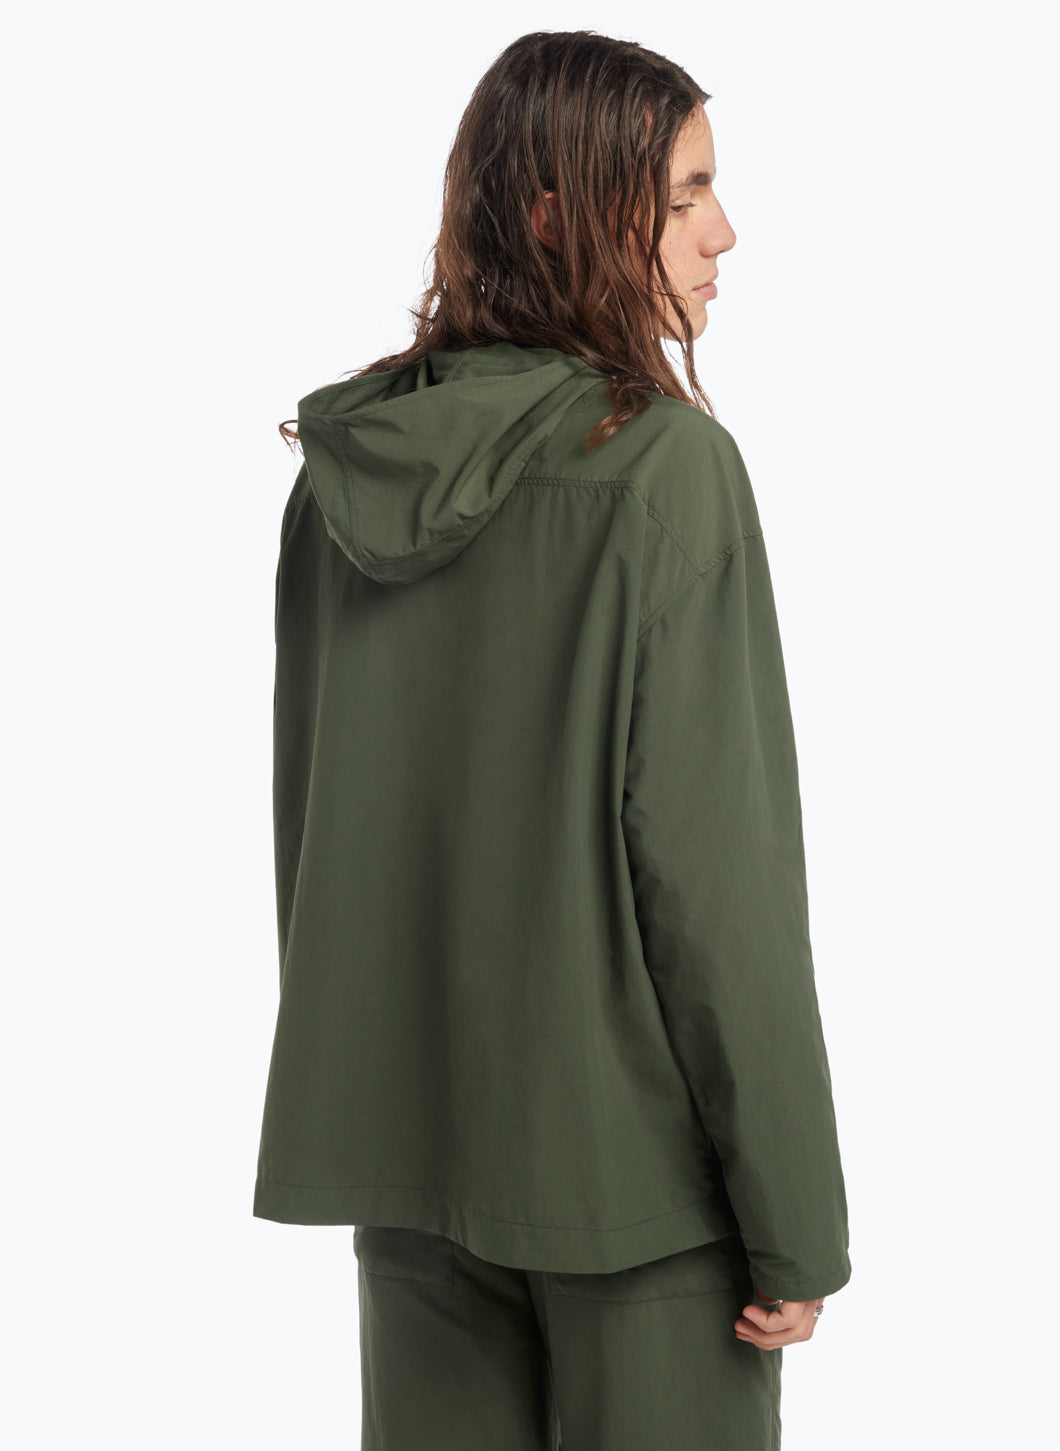 Hooded Overshirt with Rounded Neckline in Olive Technical Material